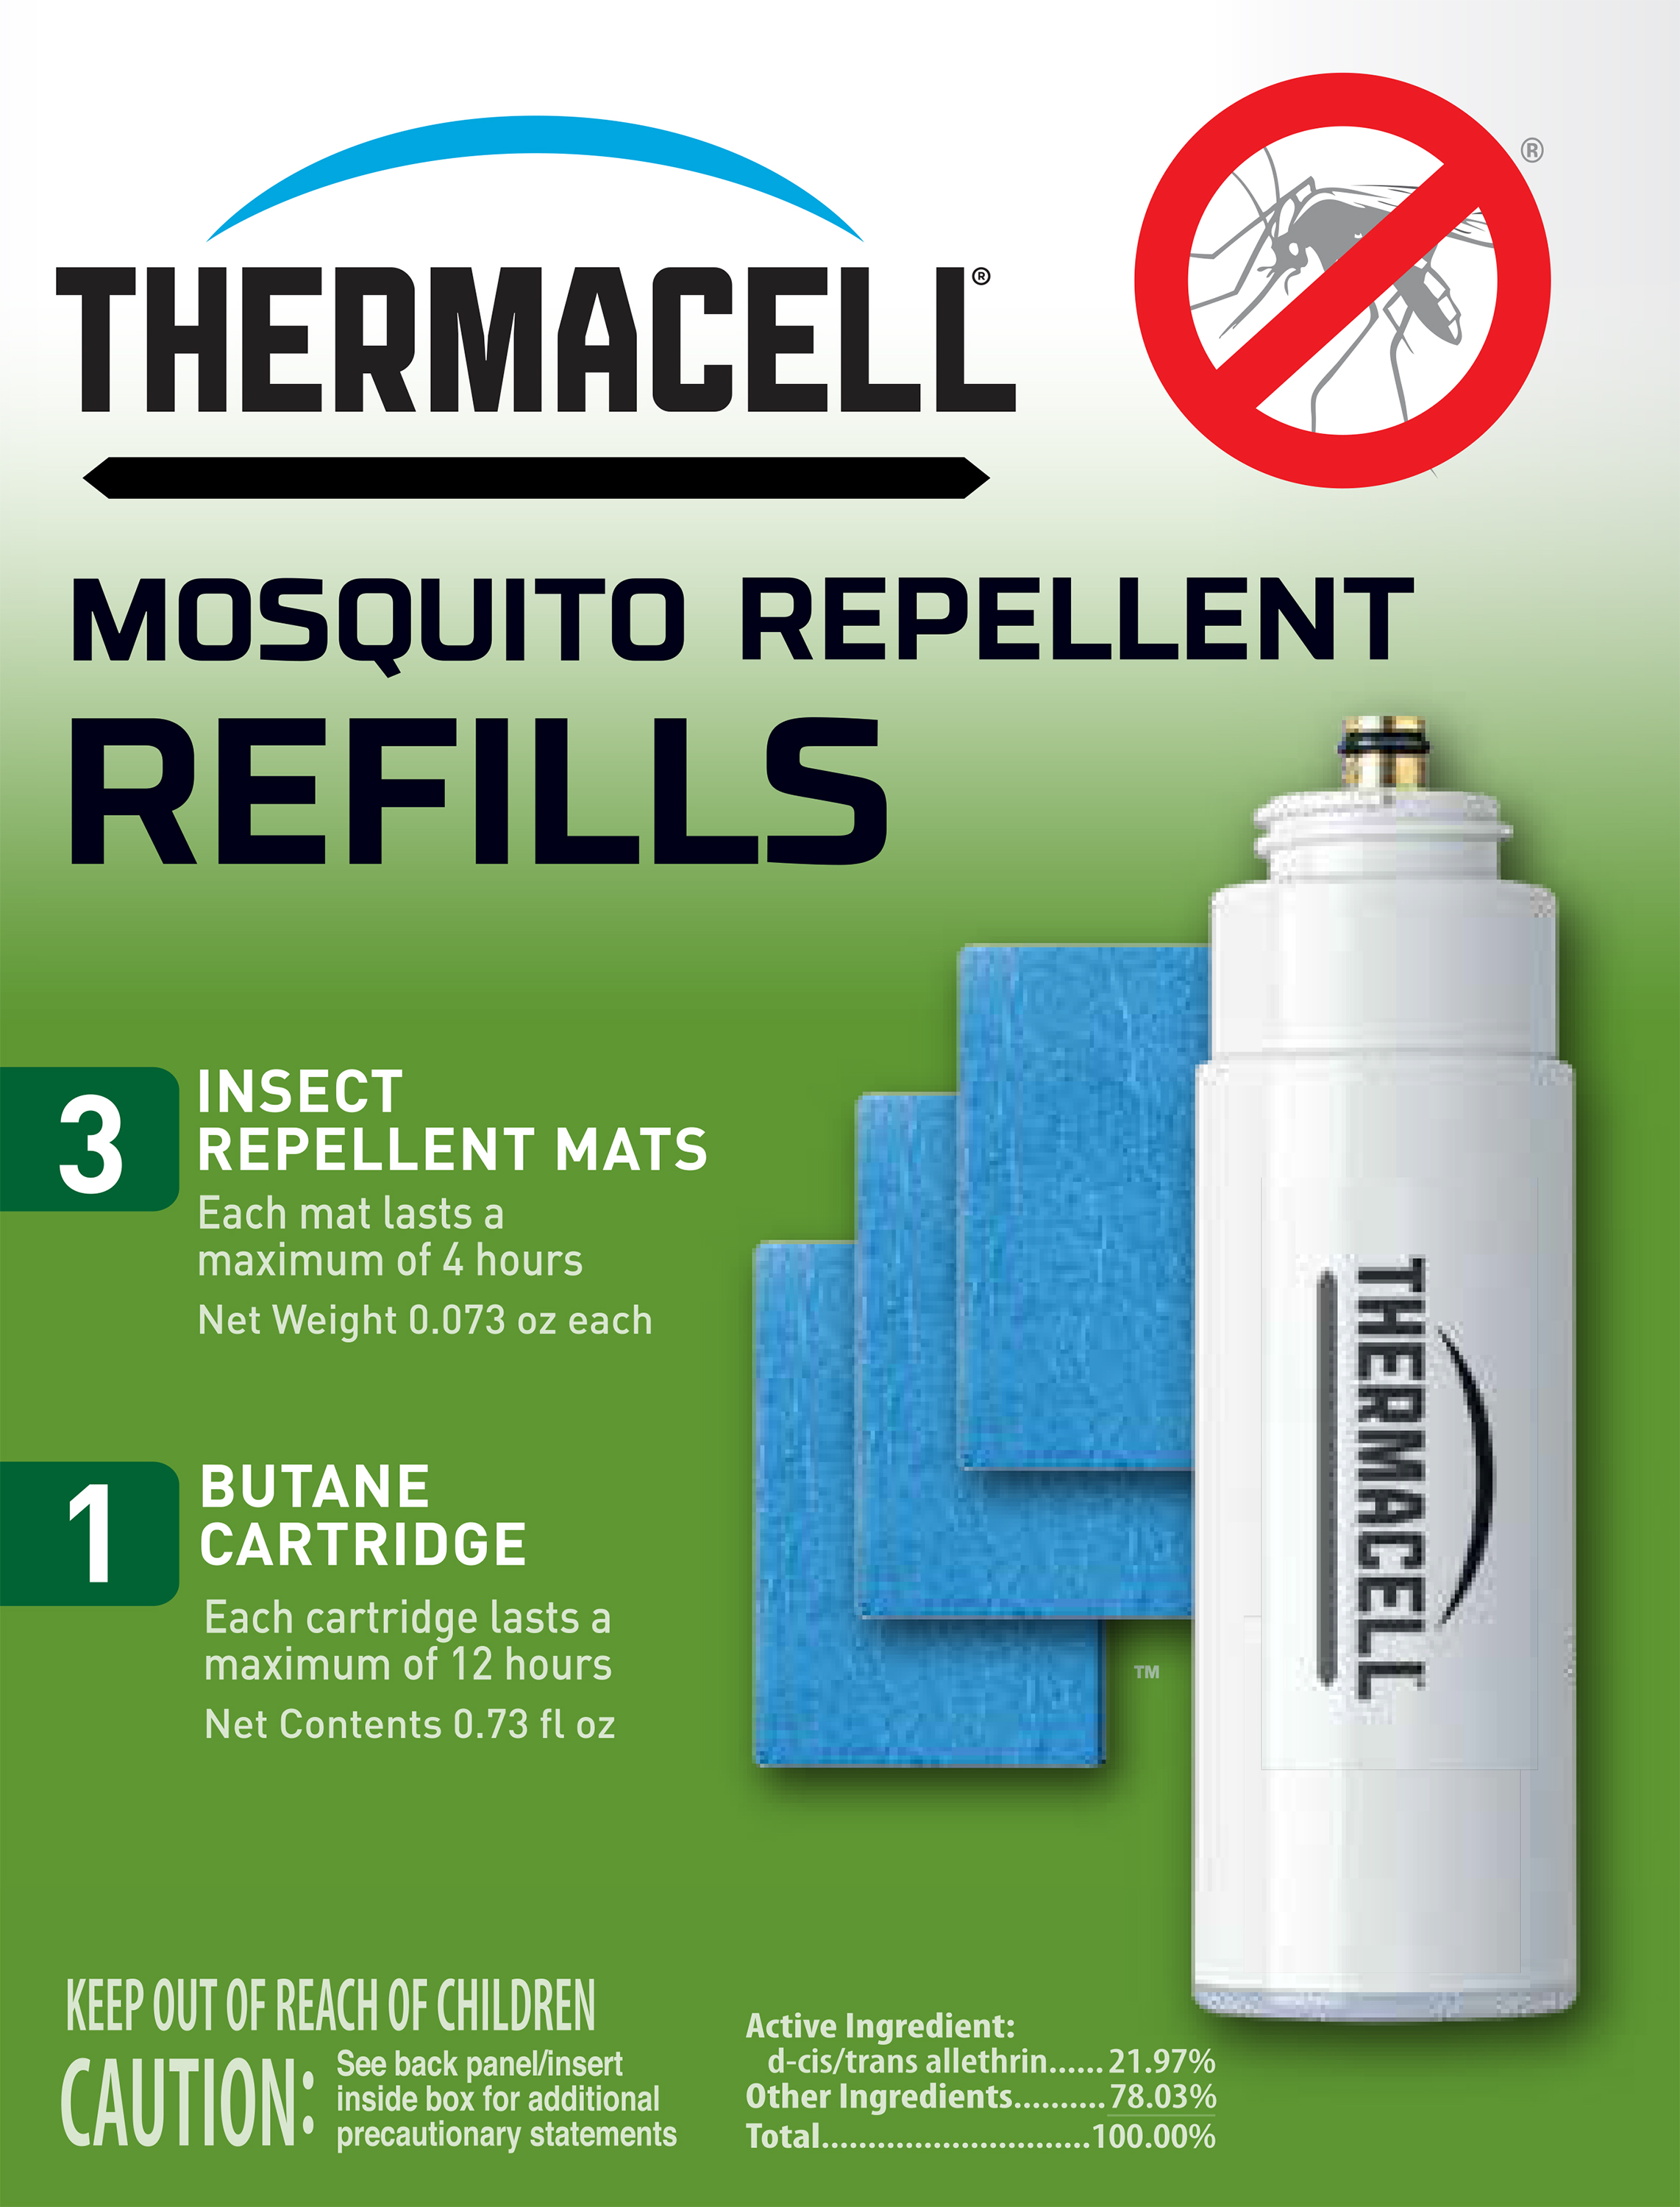 R-1 ThermaCell Mosquito Repellent Refill Use With All Thermacell